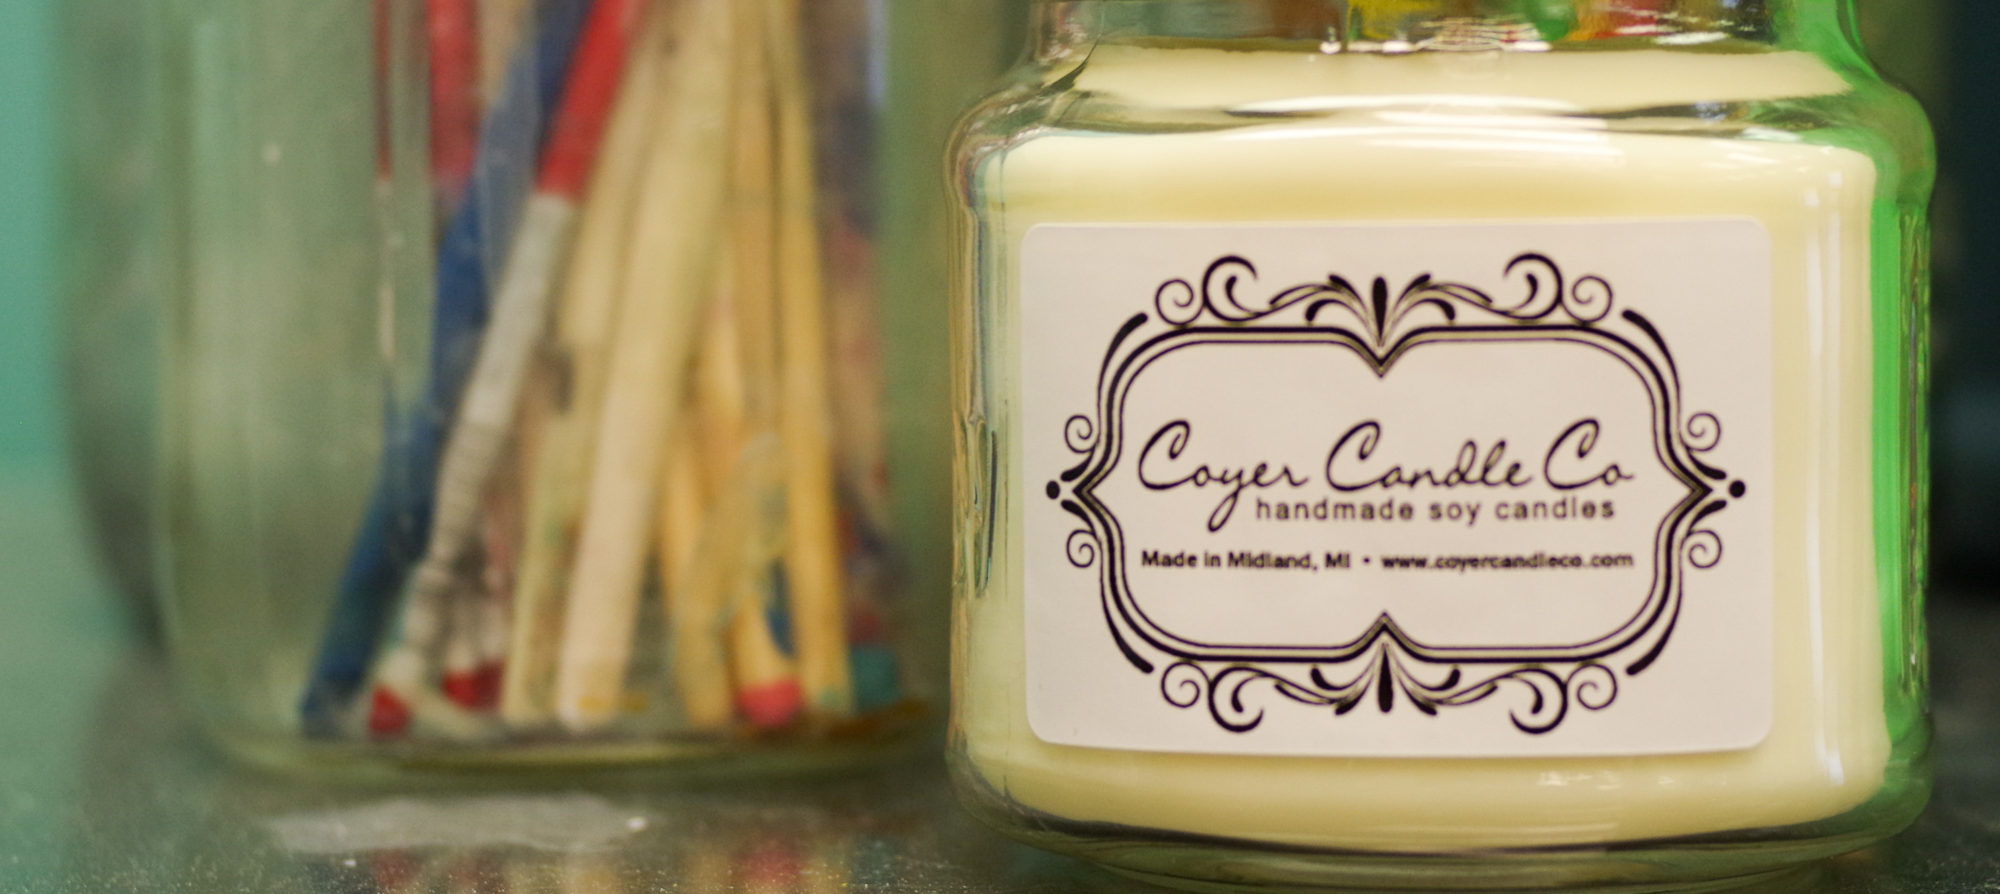 Coyer Candle Co Spring Collection